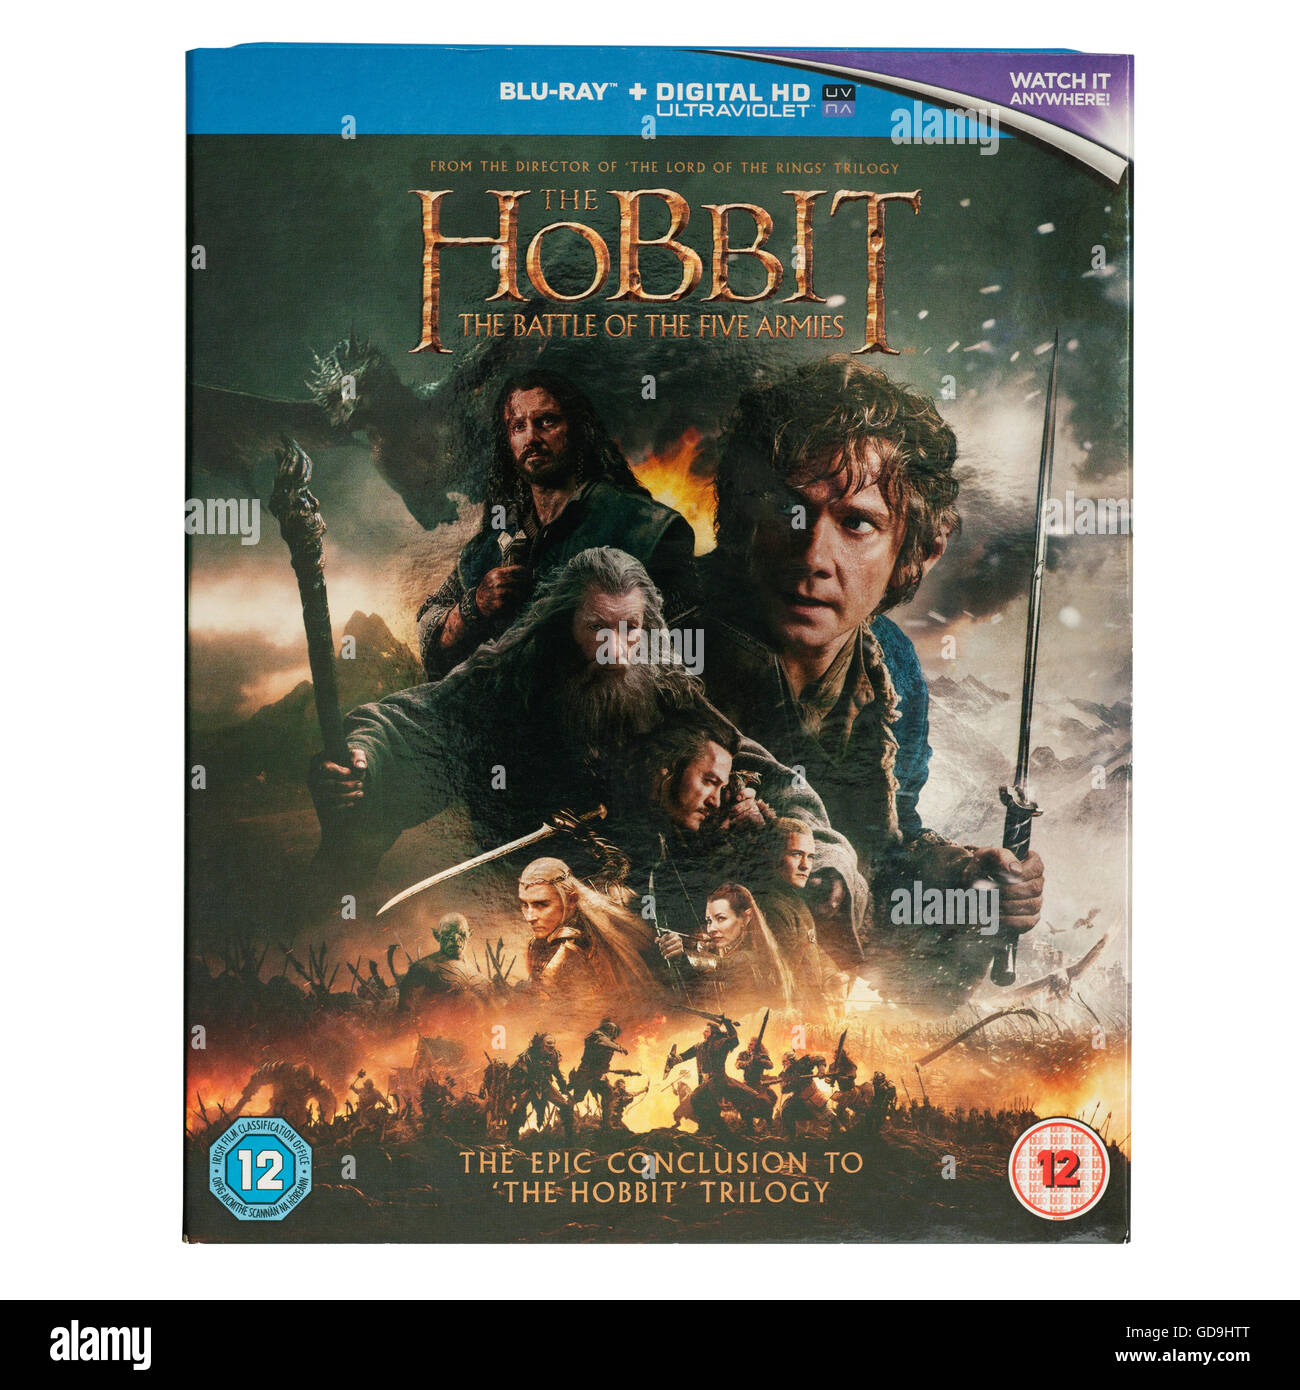 The Hobbit Blu-Ray dvd film The Battle of the Five Armies on a white background - Stock Image